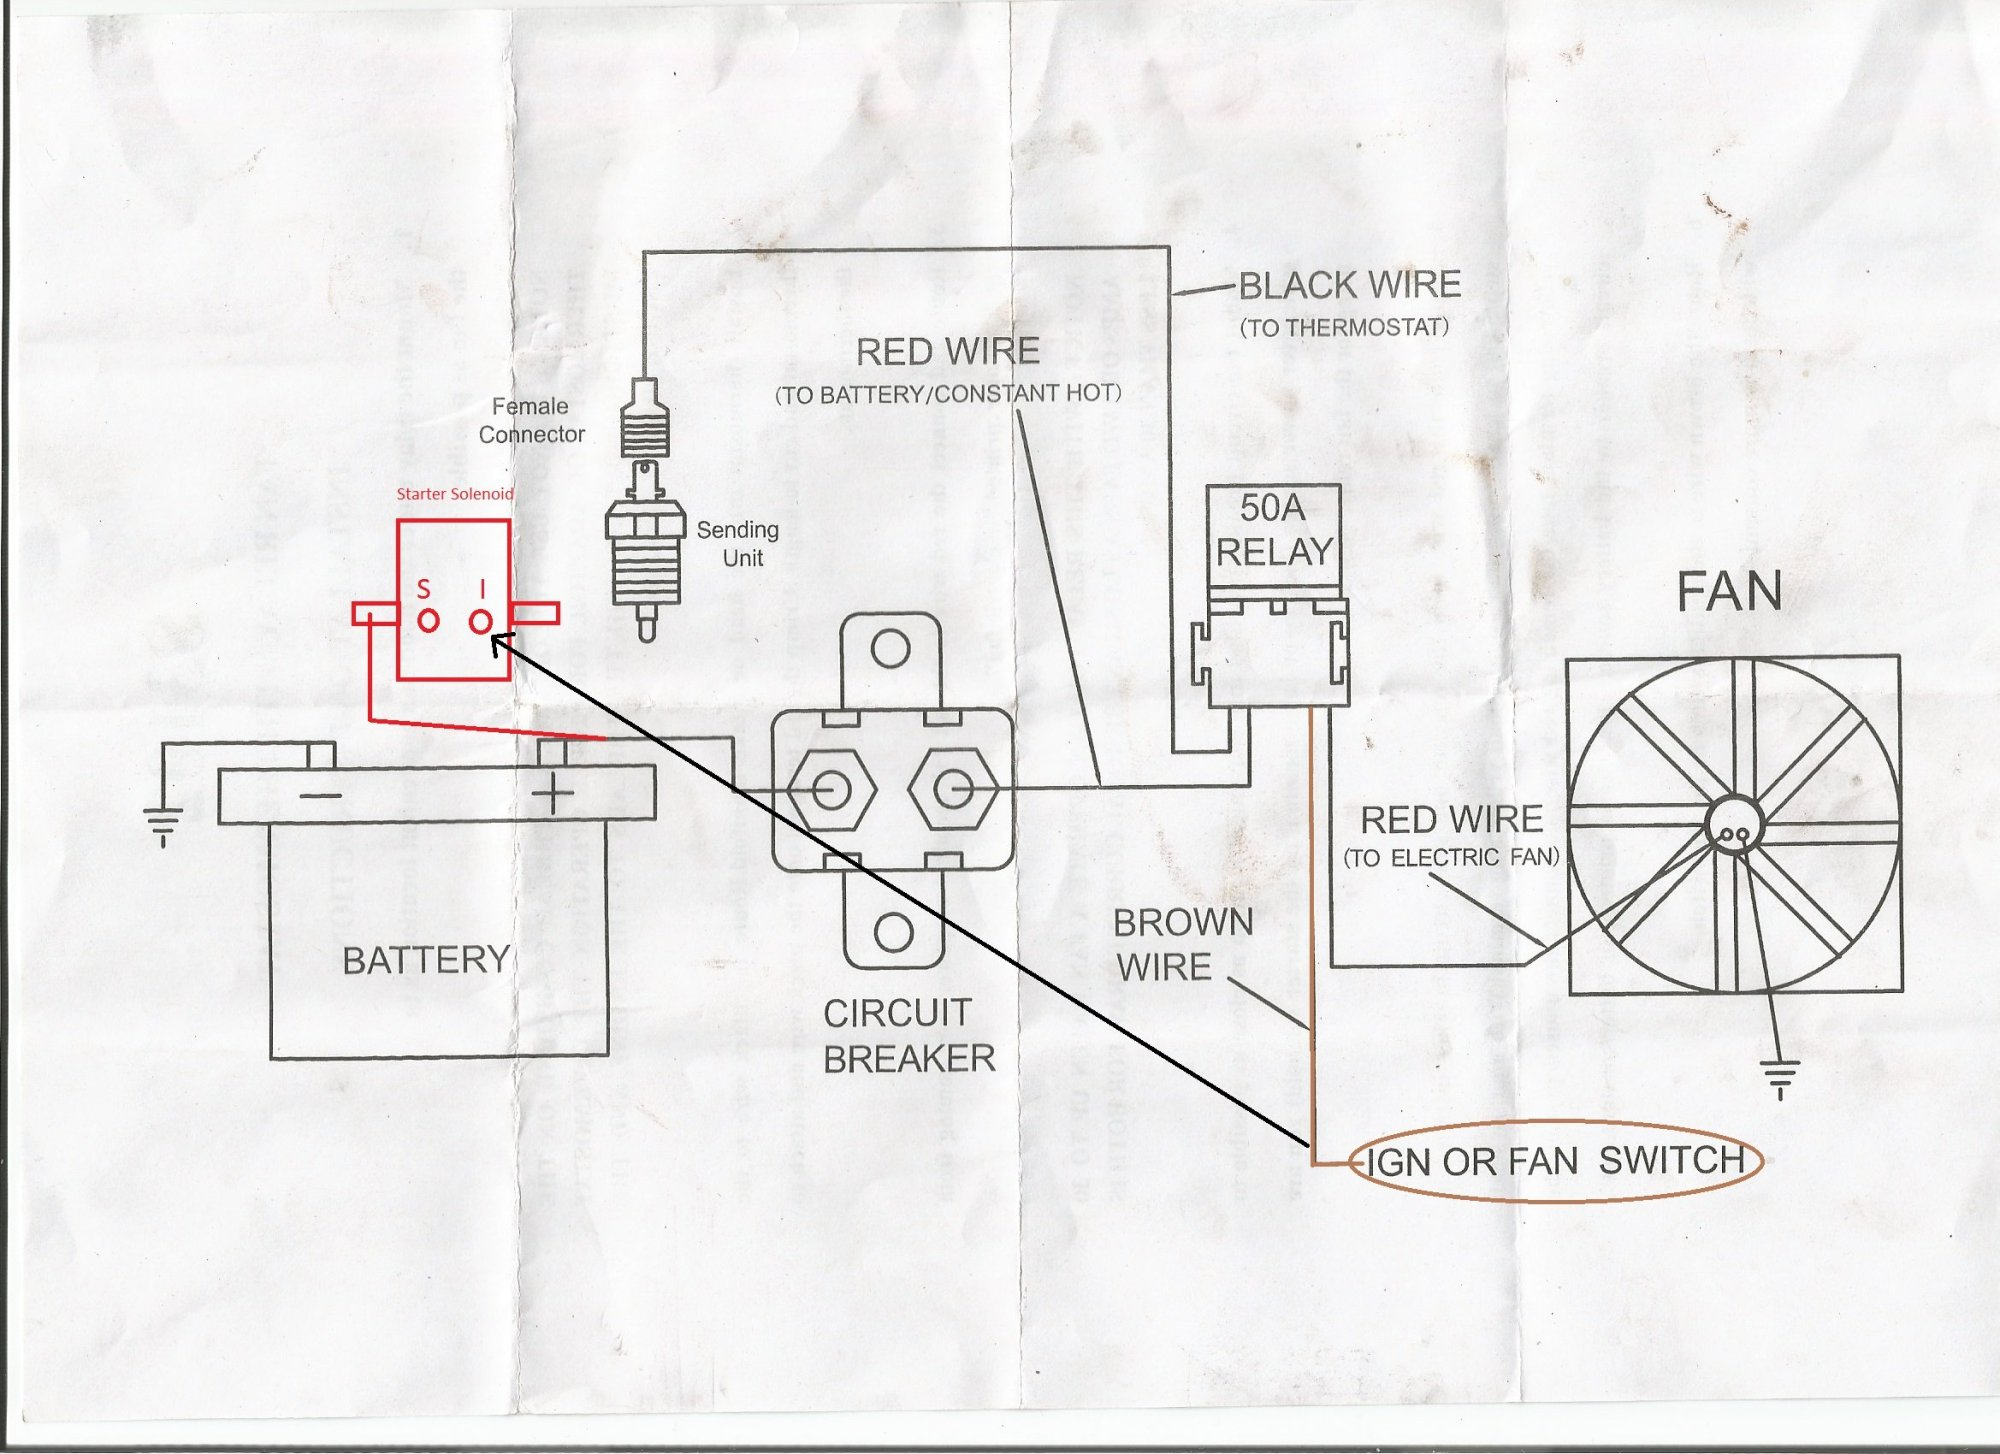 hight resolution of mustang electric fan wiring diagram wiring diagram imgwiring diagrams with thermostat for electric fan wiring library